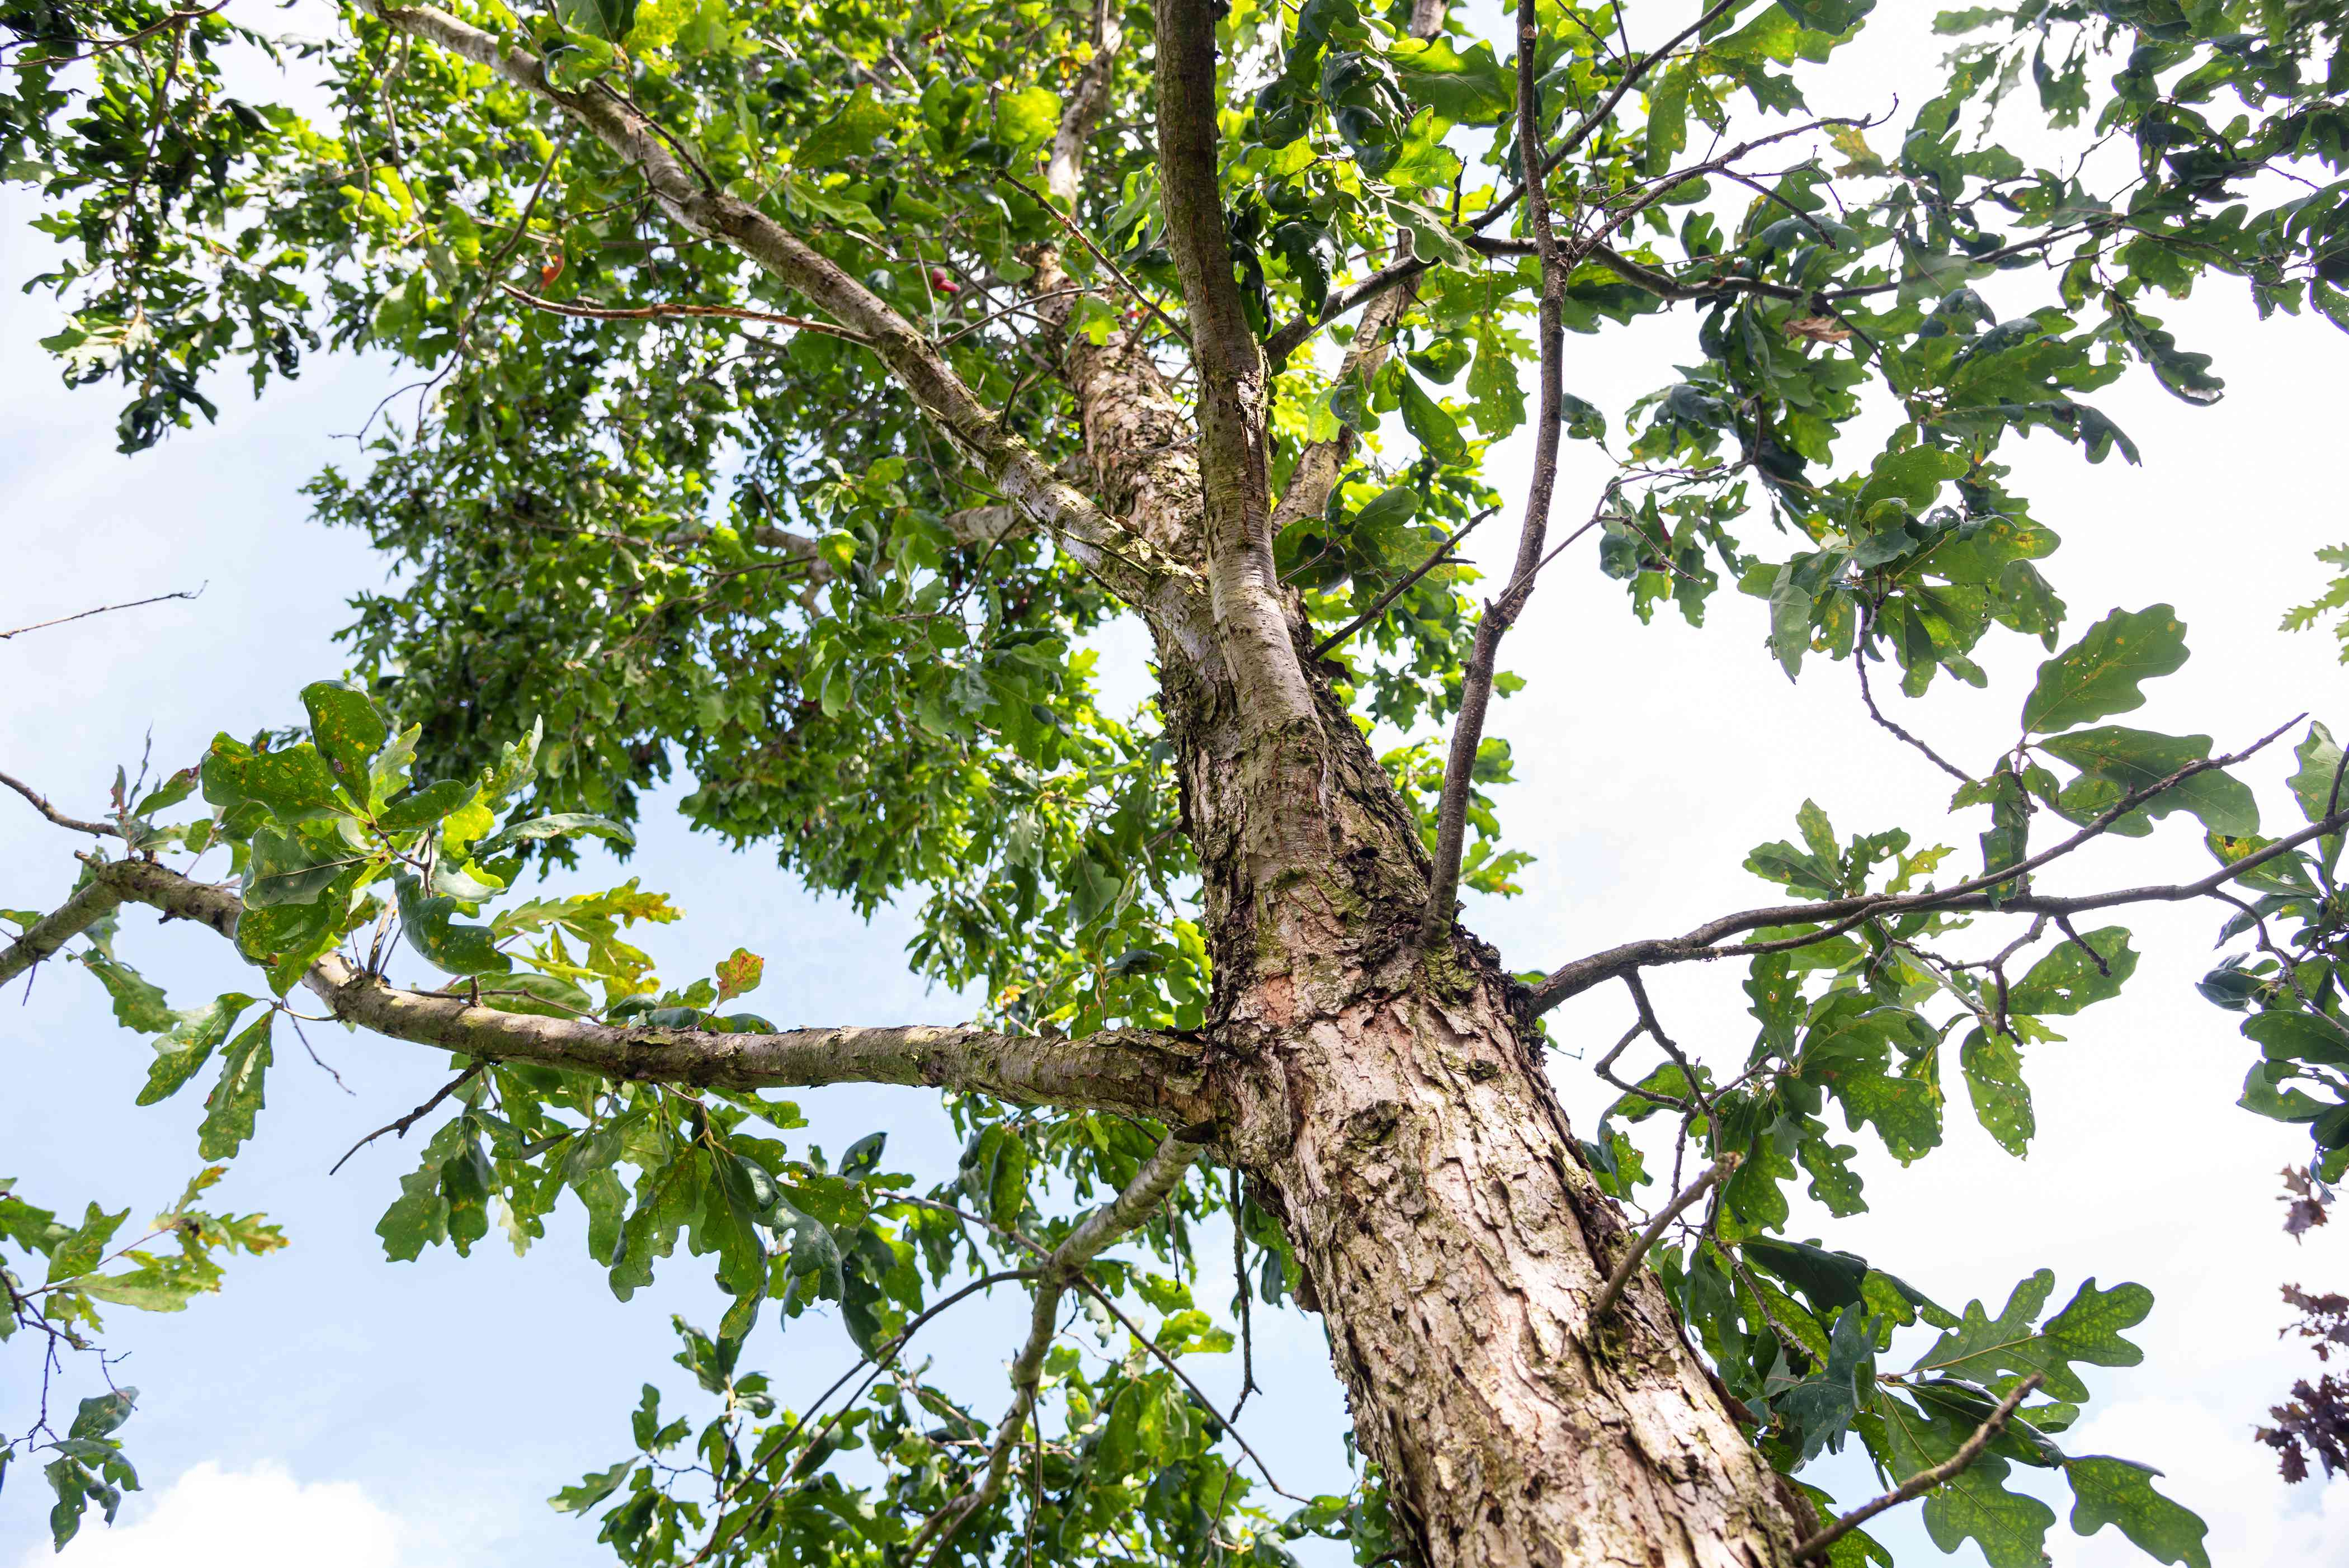 White oak tree with tall trunk and sprawling branches with large leaves